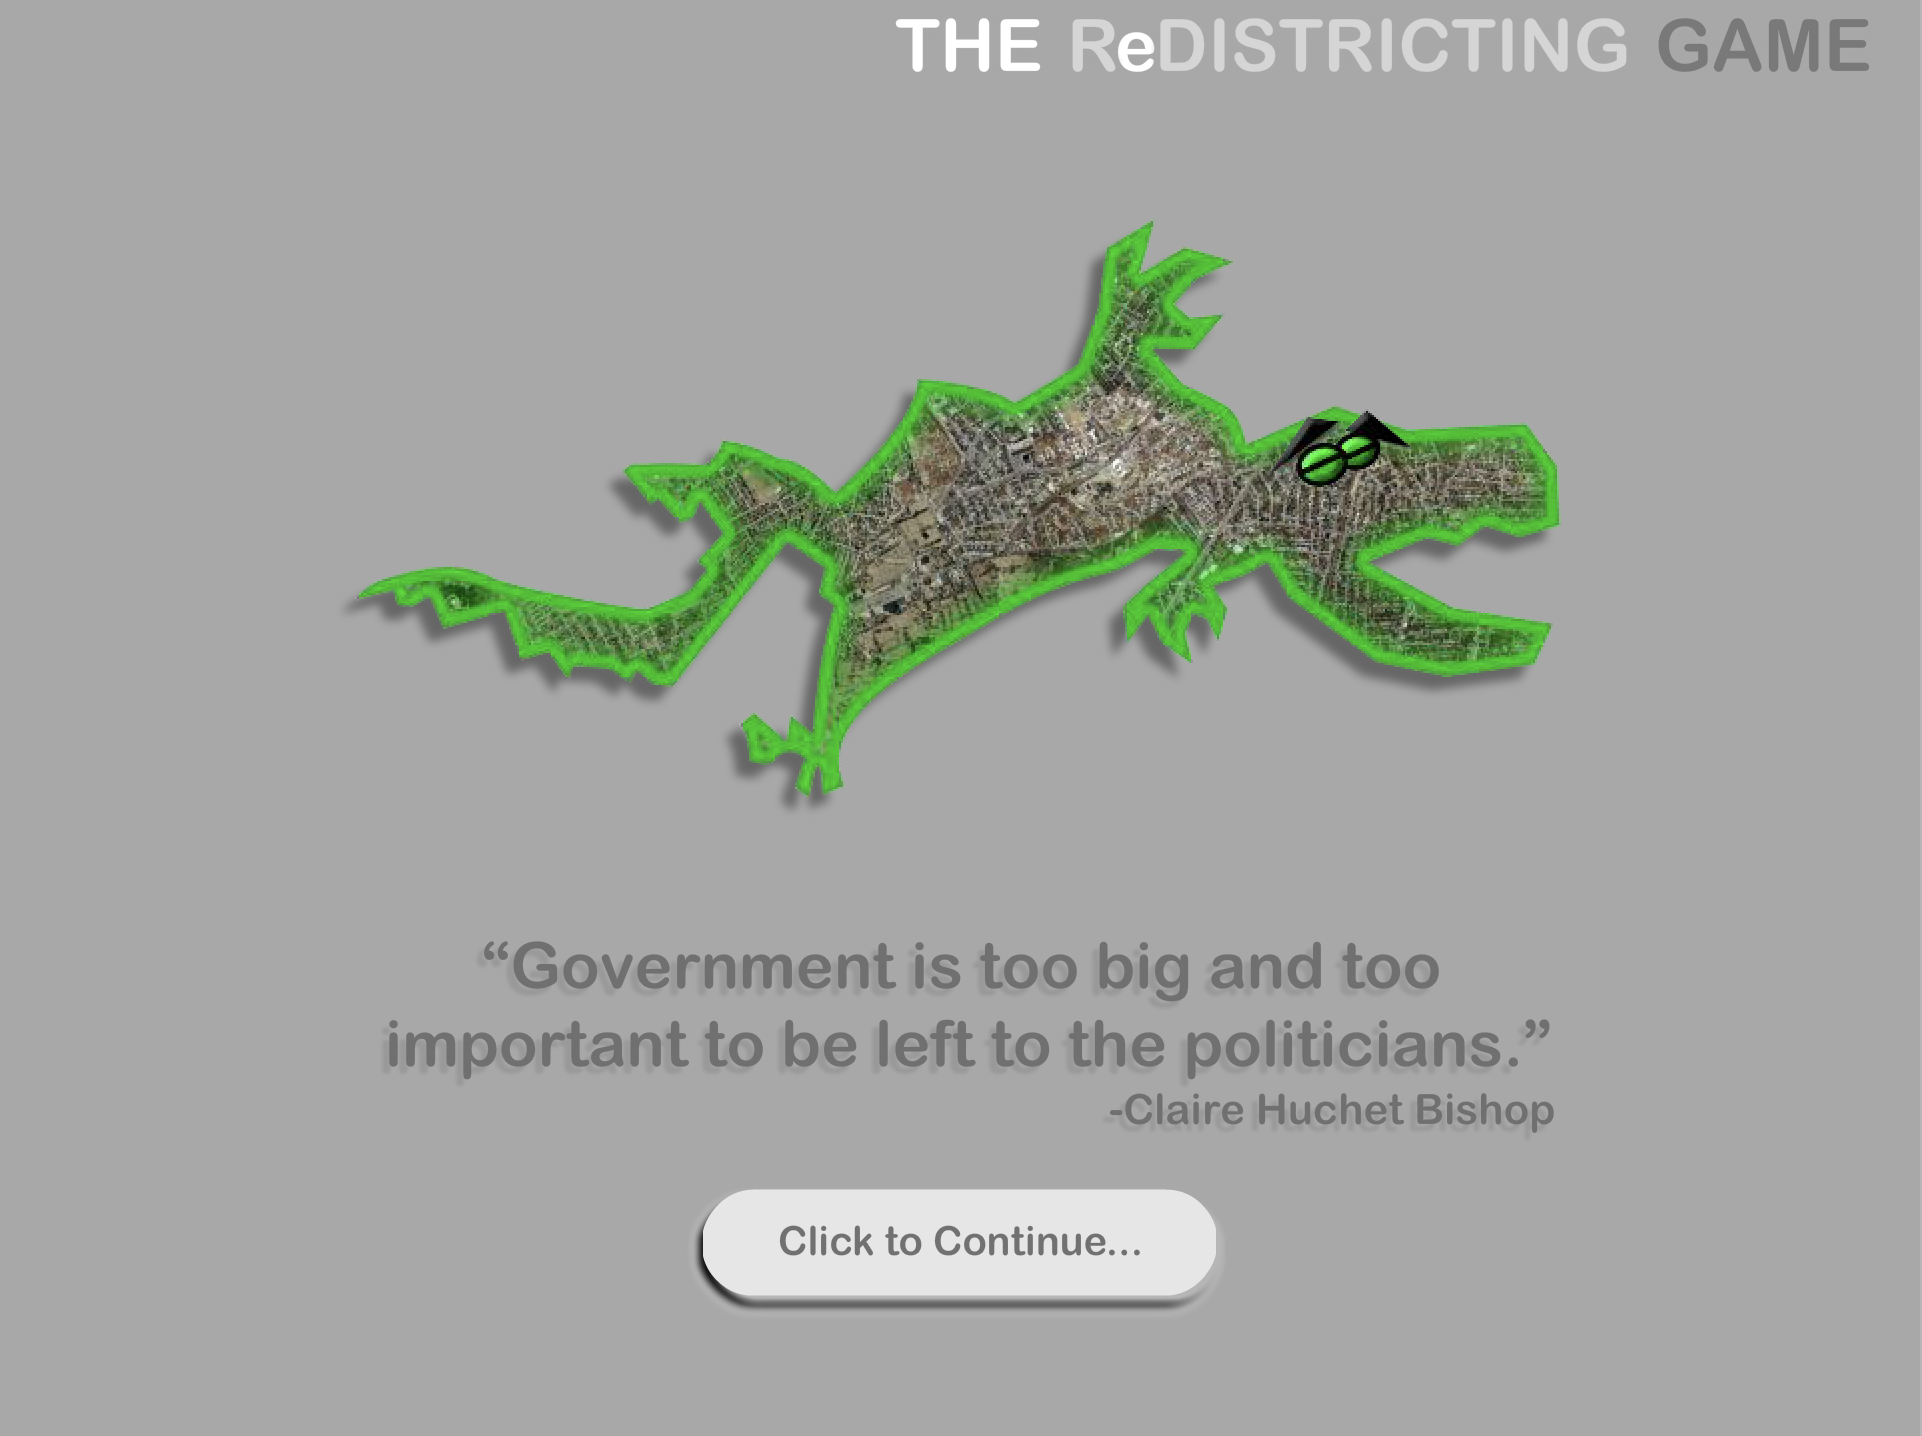 http://www.redistrictinggame.org/index.php